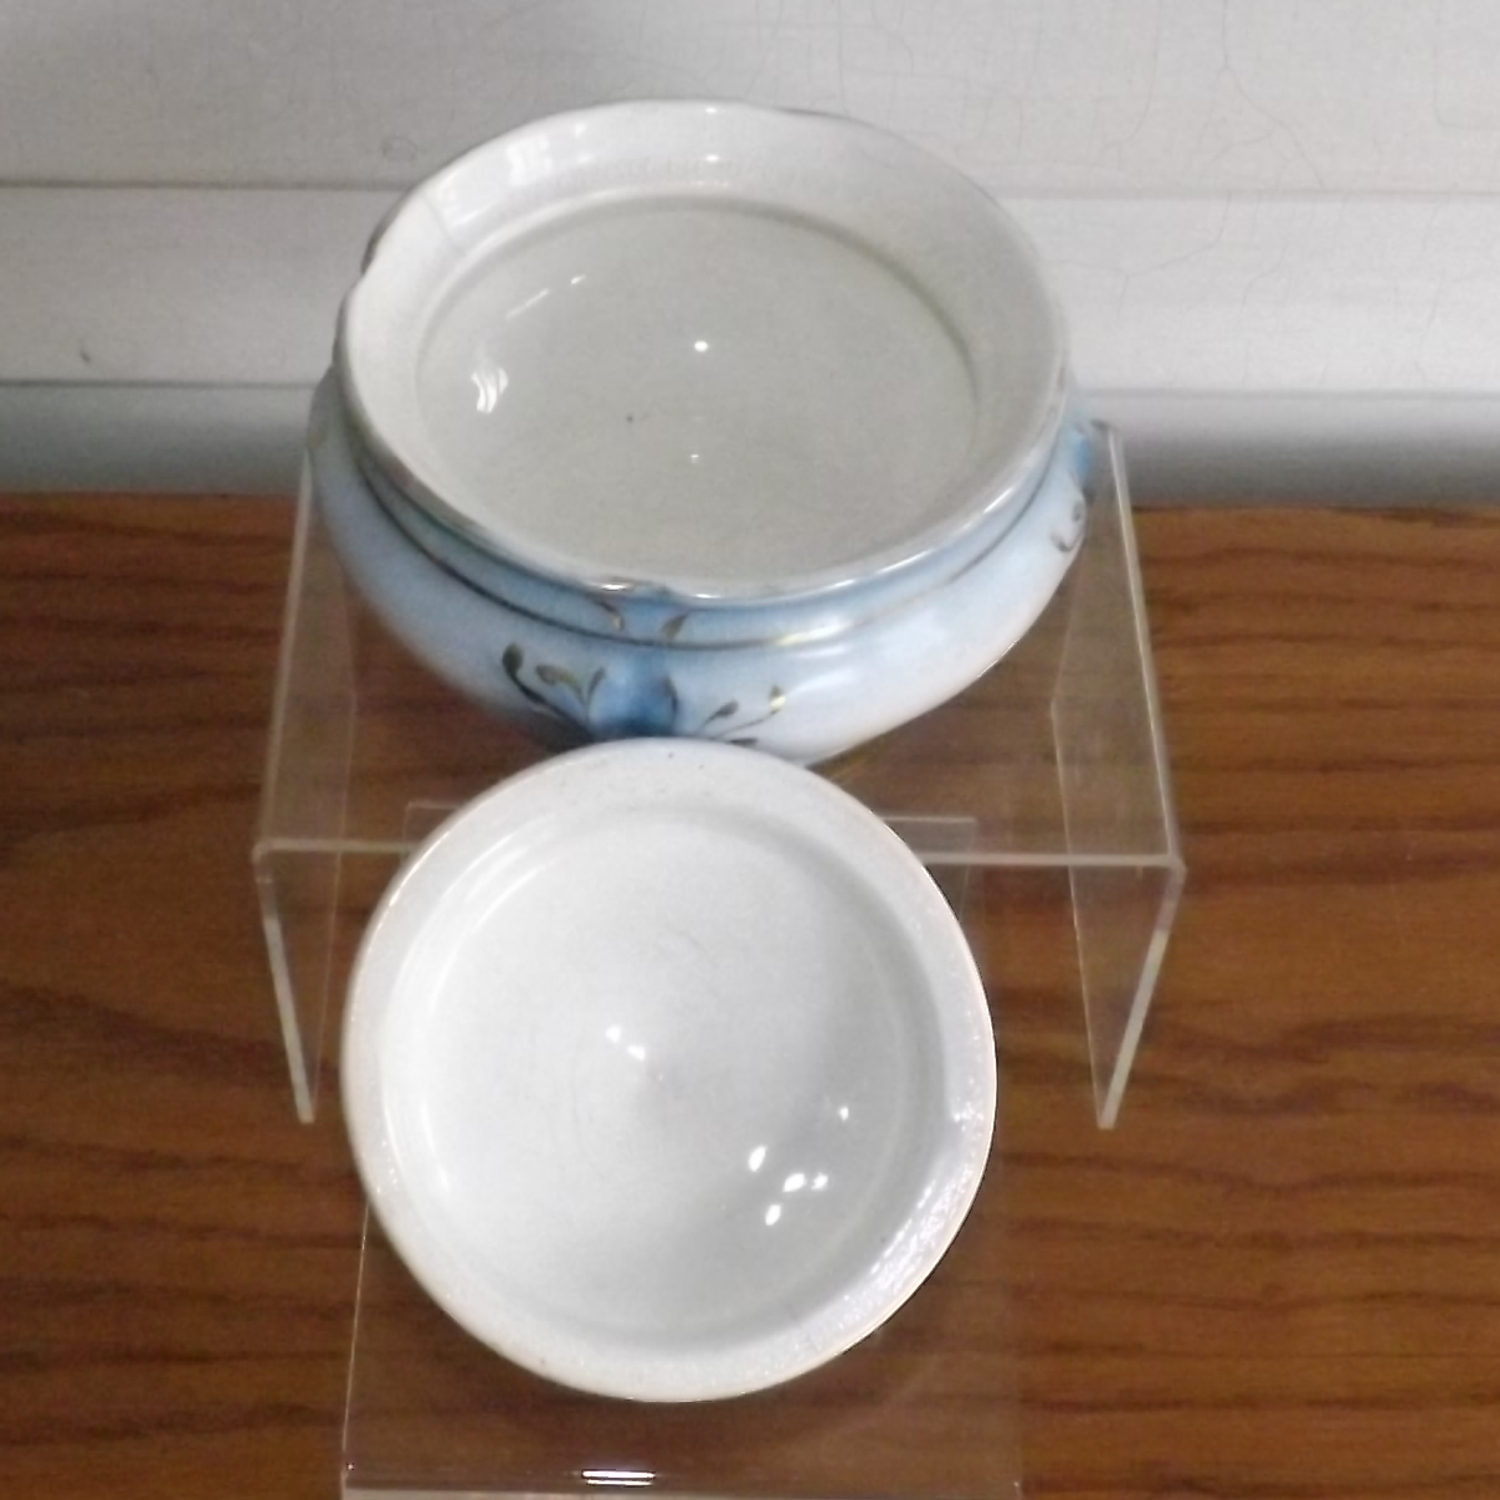 Bathroom Set 3 pieces Shades of Blue and Gold Unbranded